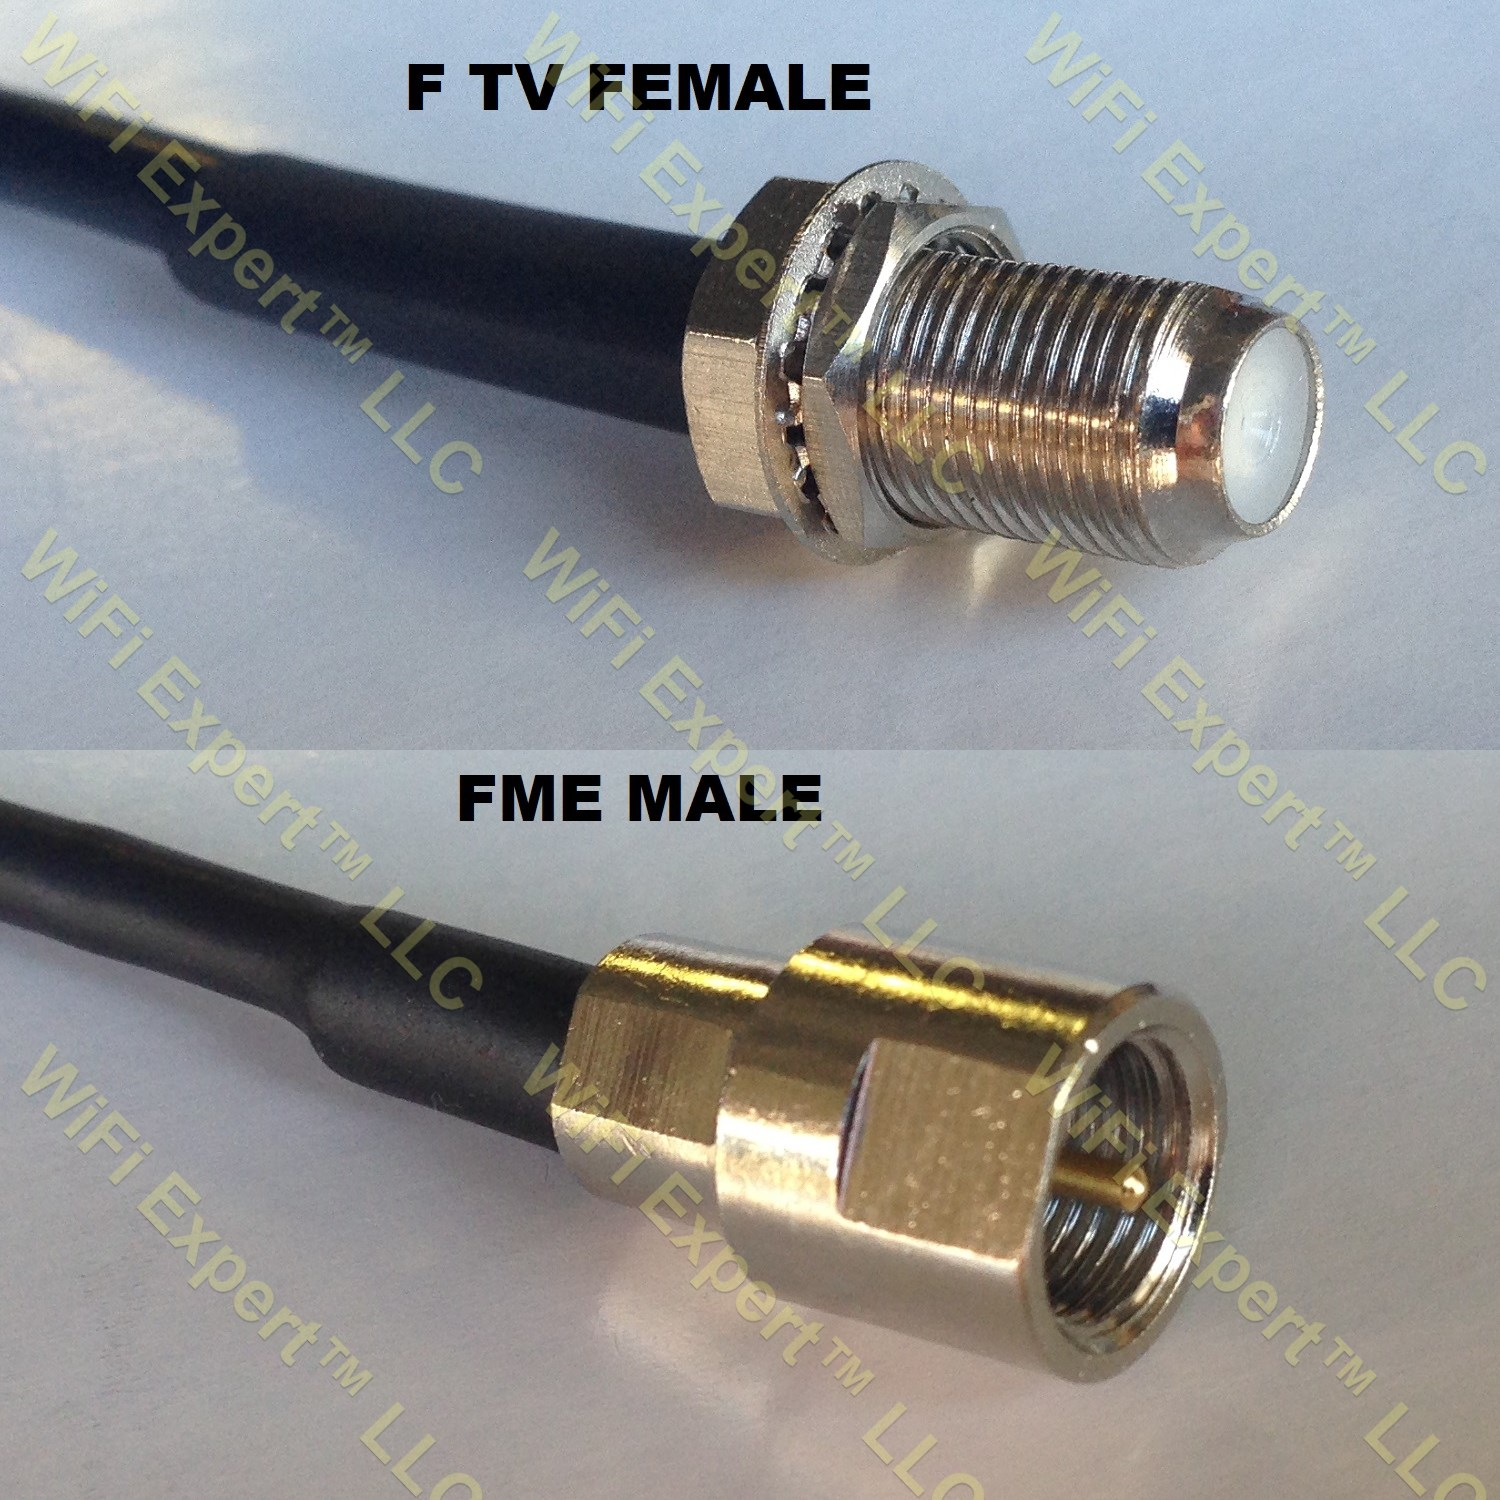 USA-CA LMR100 BNC MALE to SMC FEMALE Coaxial RF Pigtail Cable